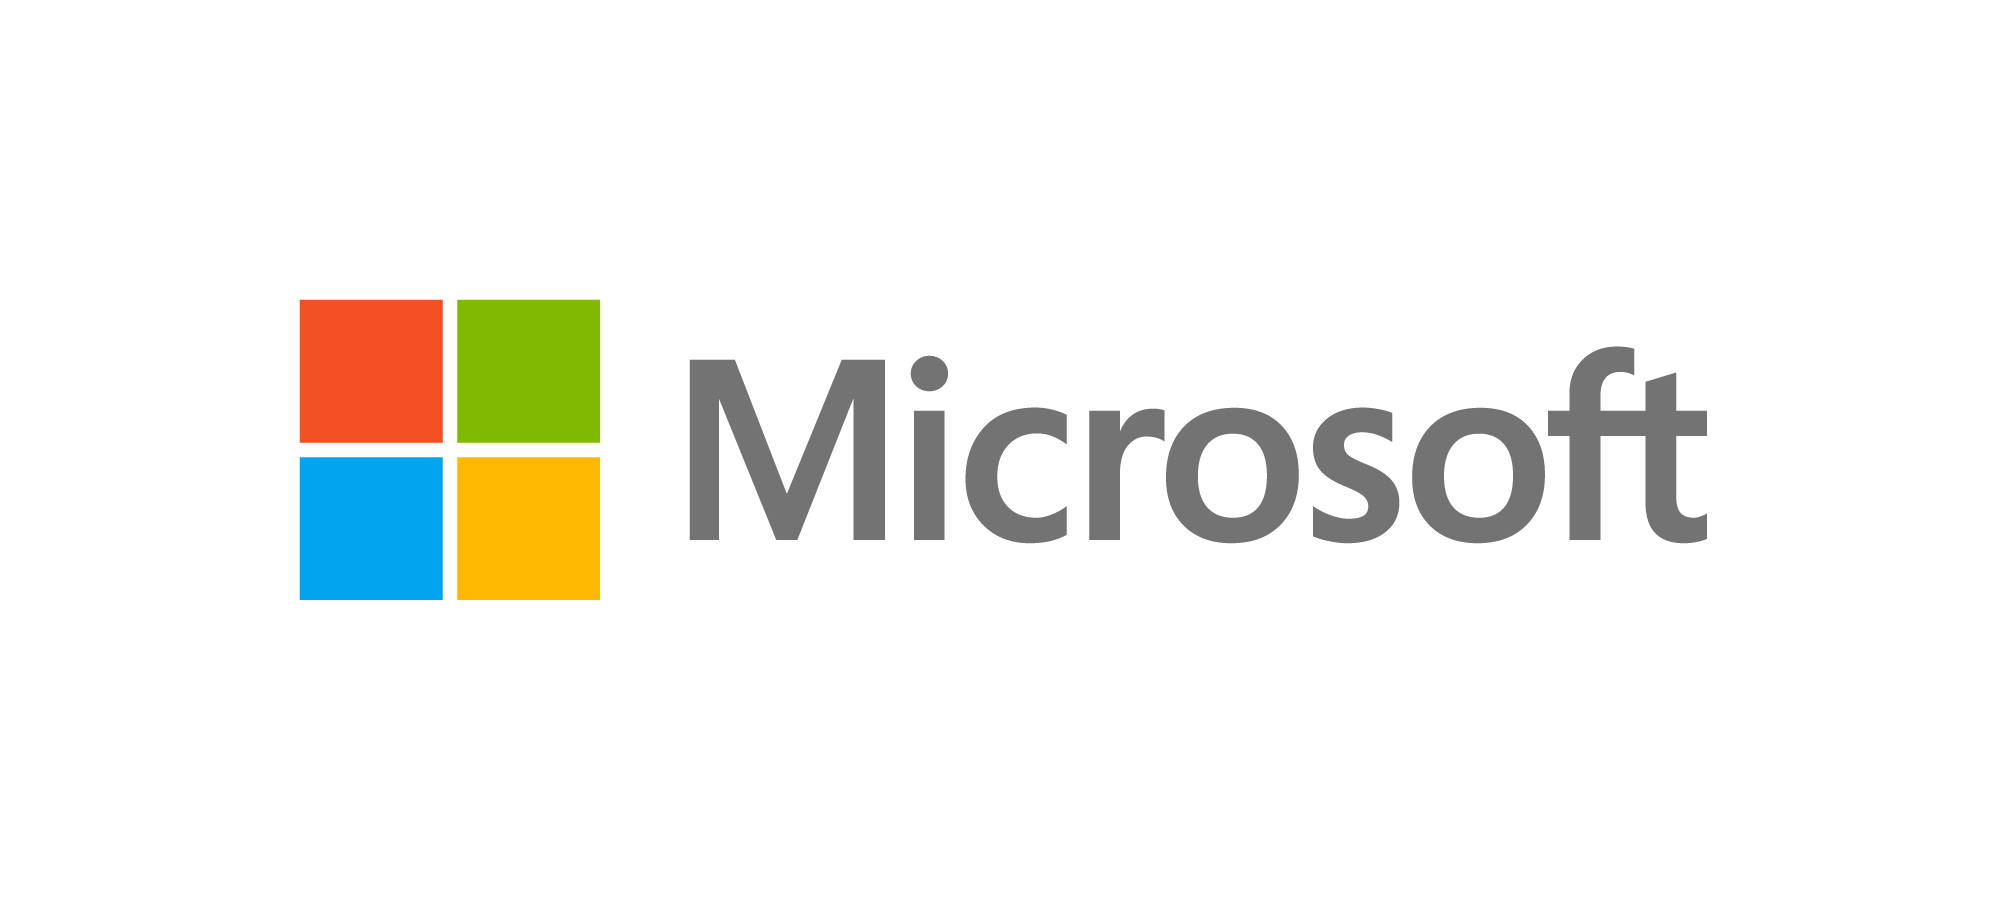 Microsoft Database Manager logo